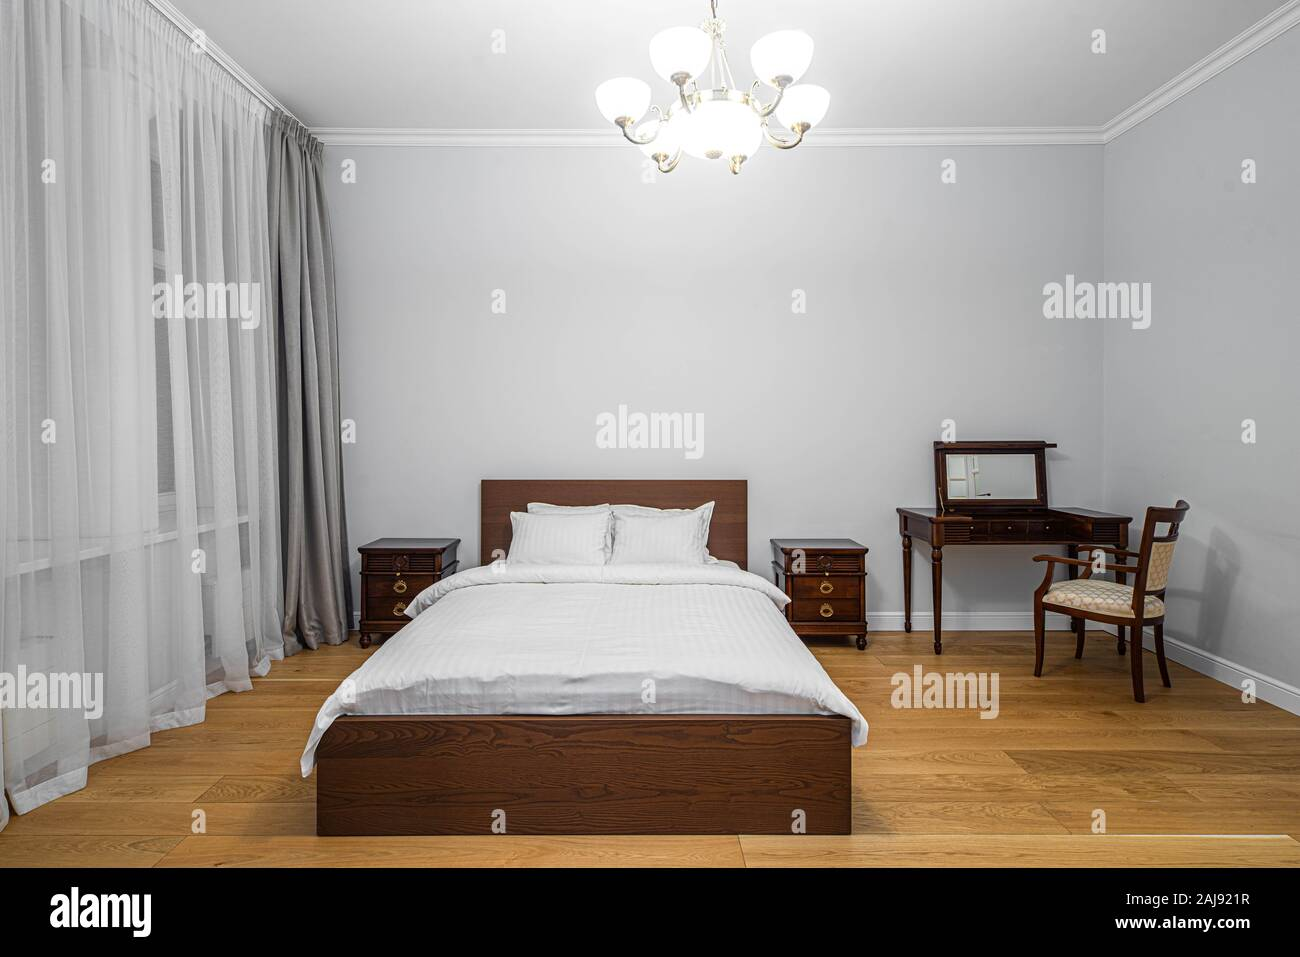 Modern Interior Of Bedroom Front View Of The King Size Bed Wooden Furniture Window And Curtain Stock Photo Alamy